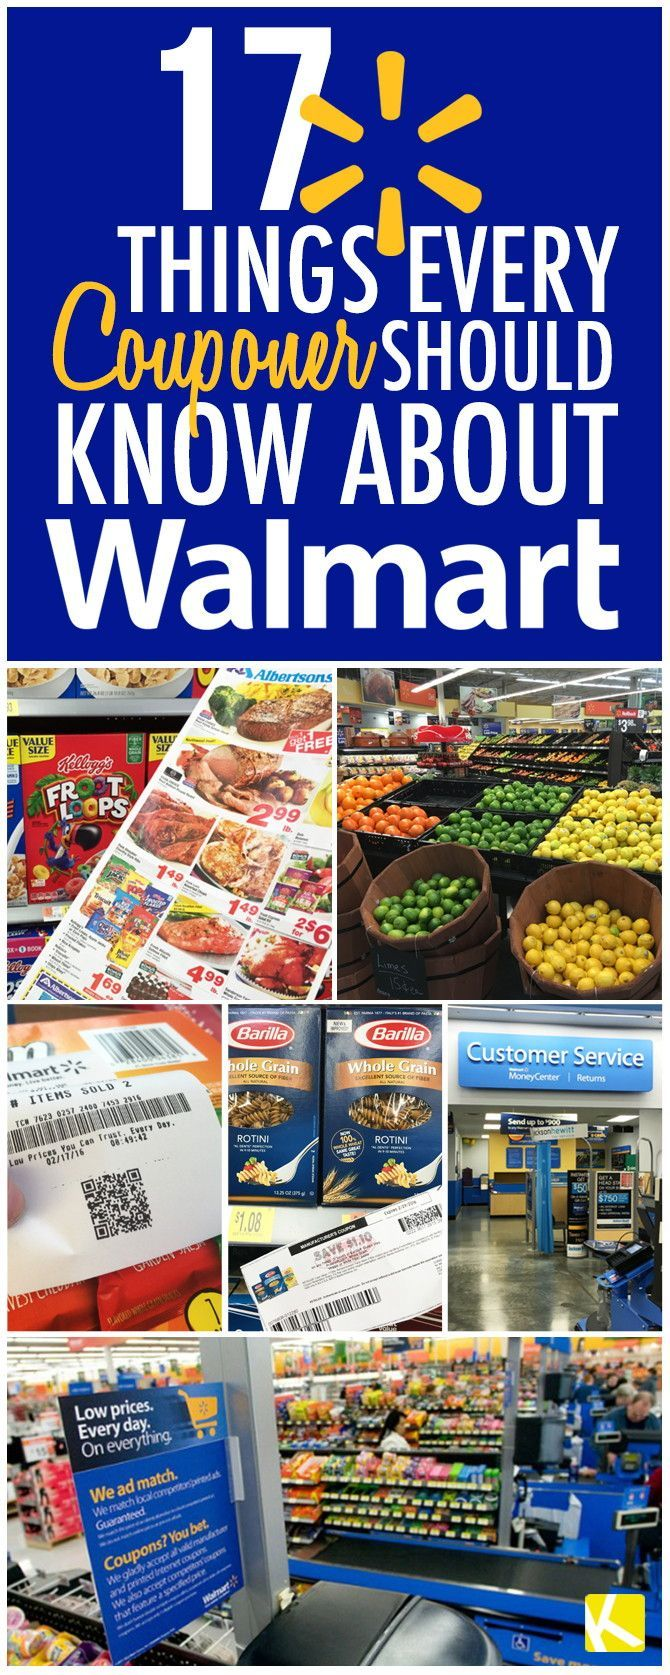 Walmart Couponing 101 How to Shop Smarter & Get Free